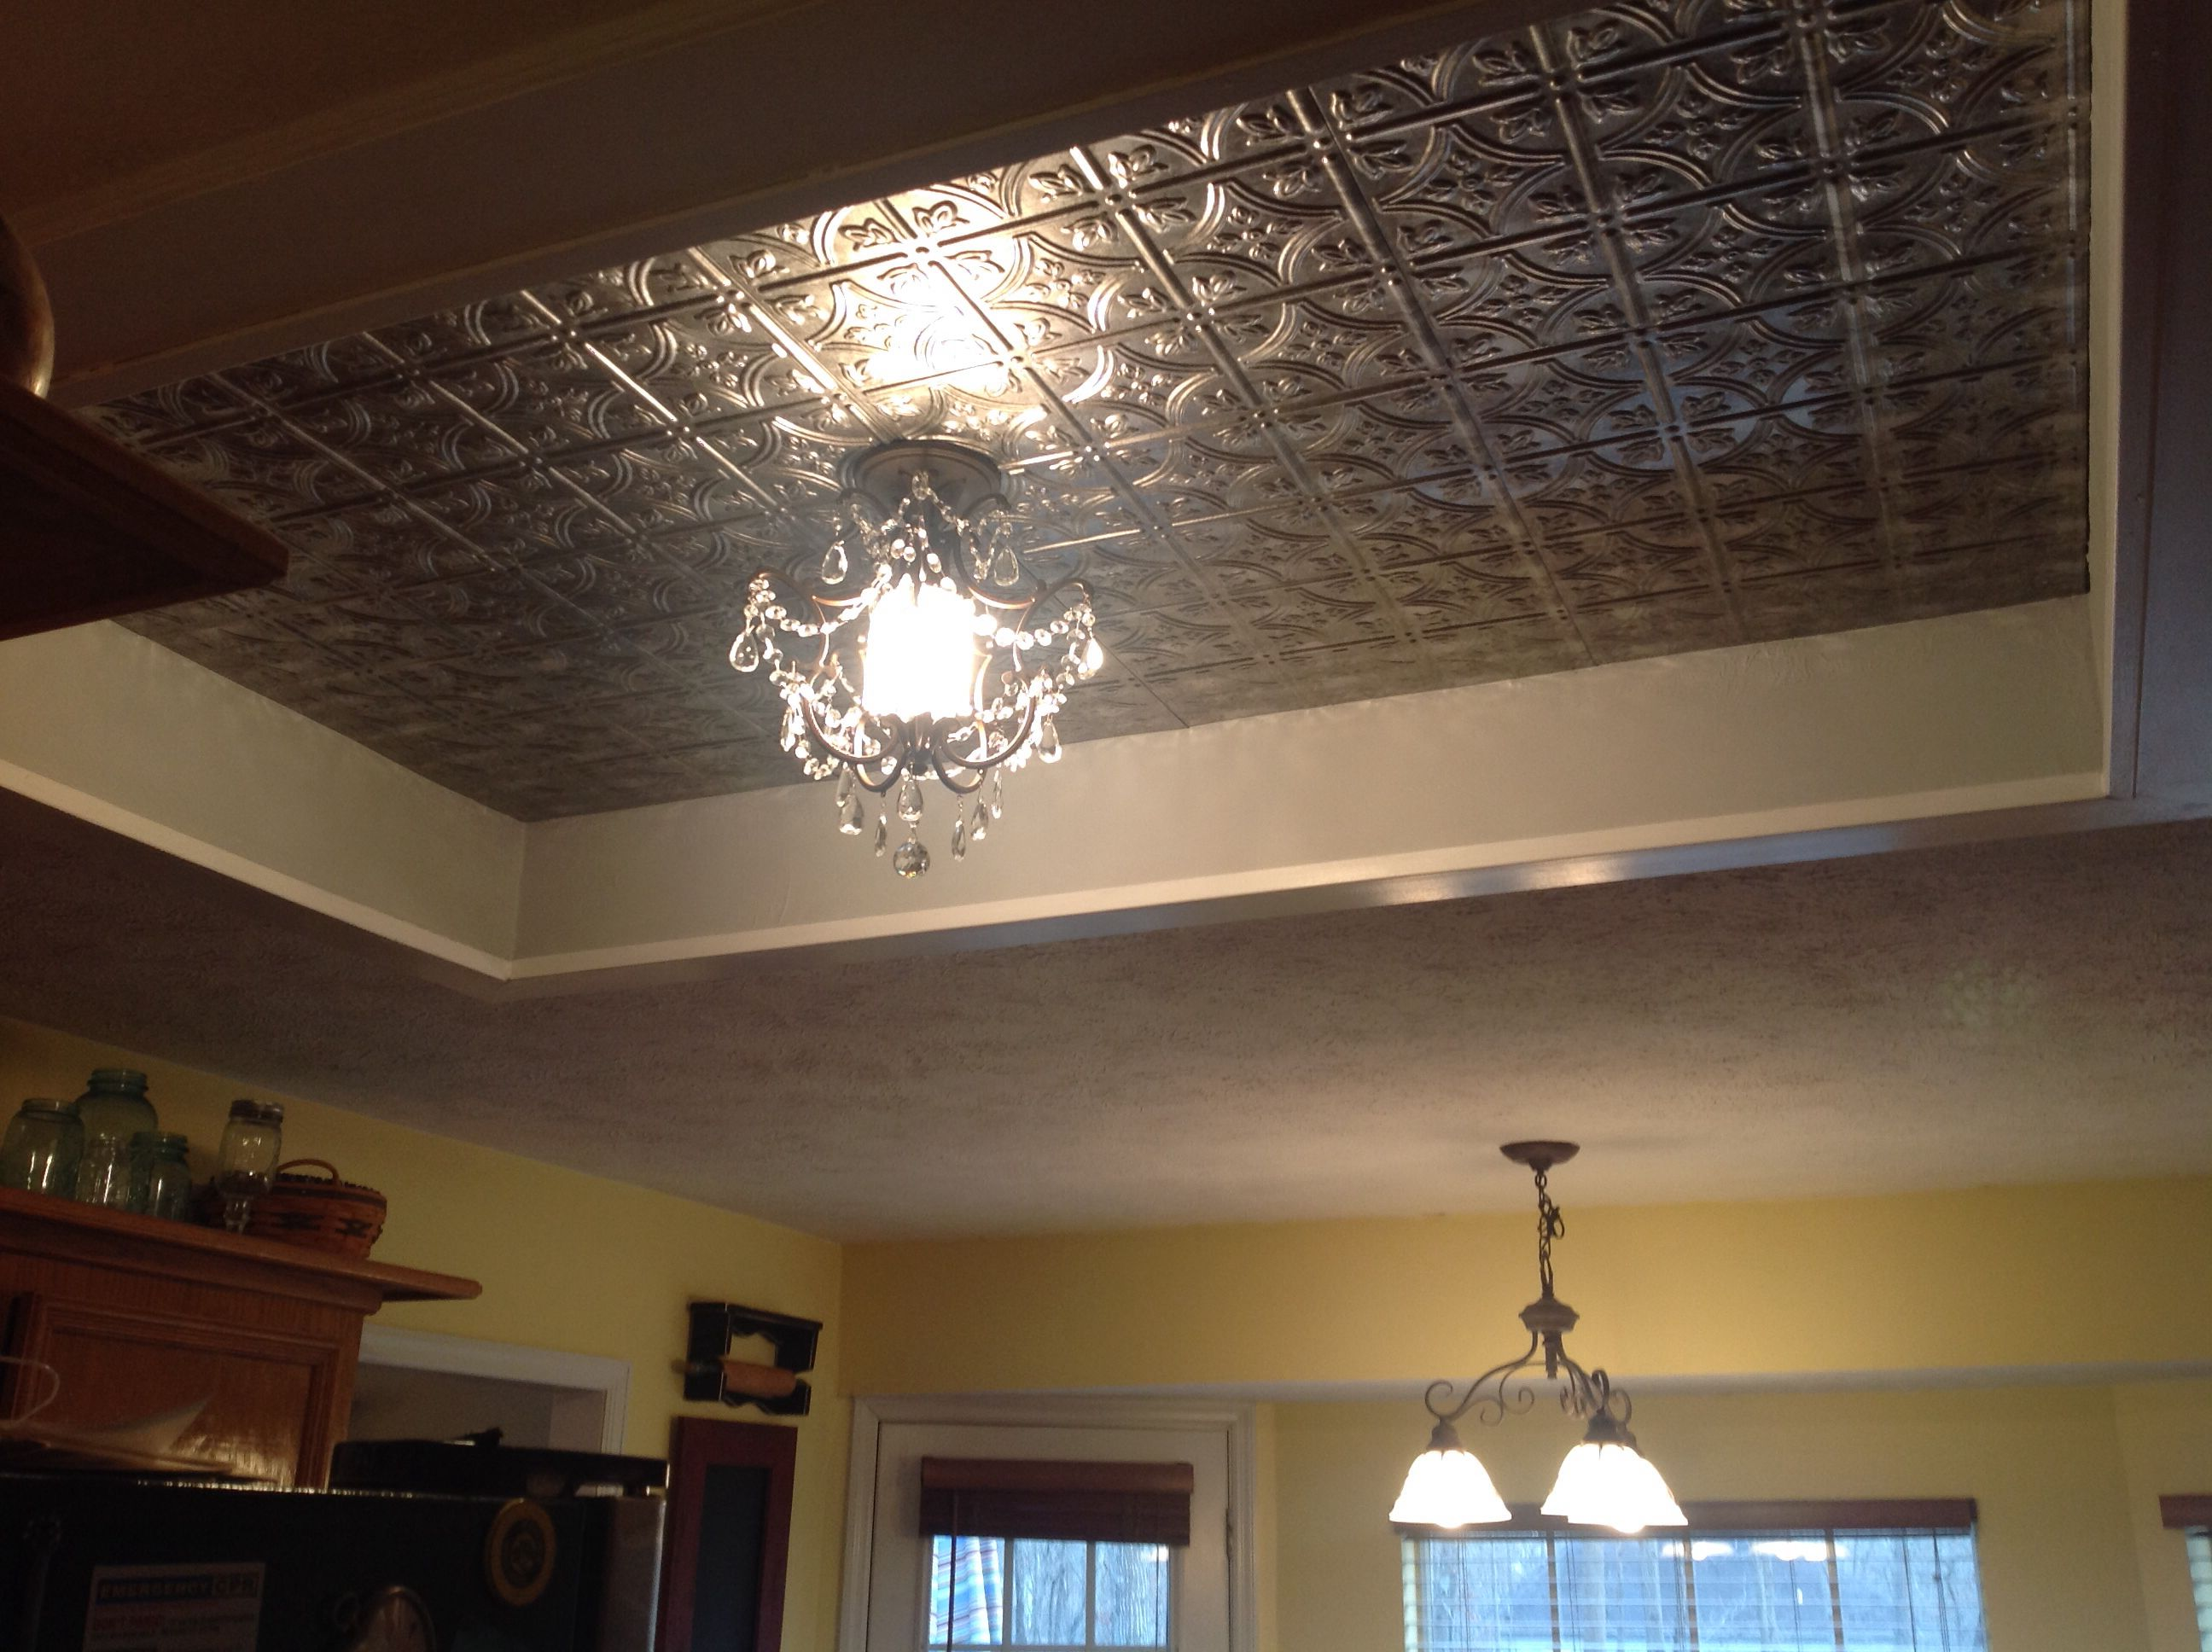 Replaced fluorescent box light with tin tiles.